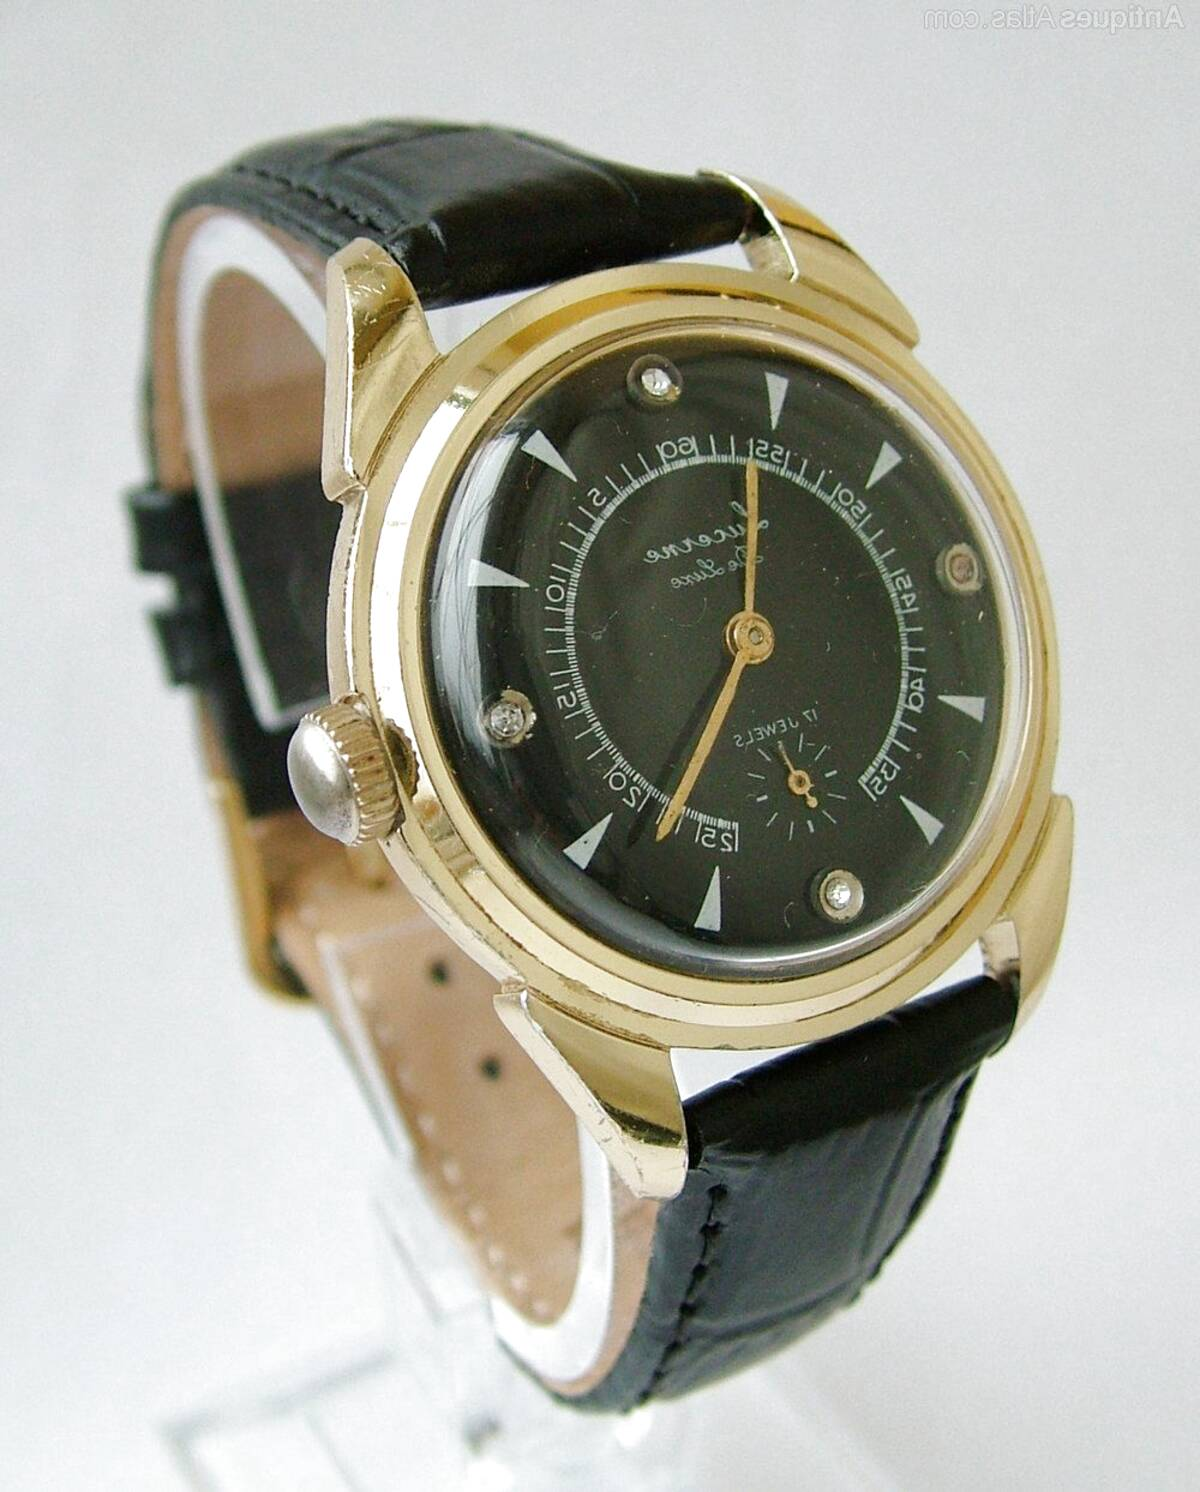 lucerne gents watches for sale